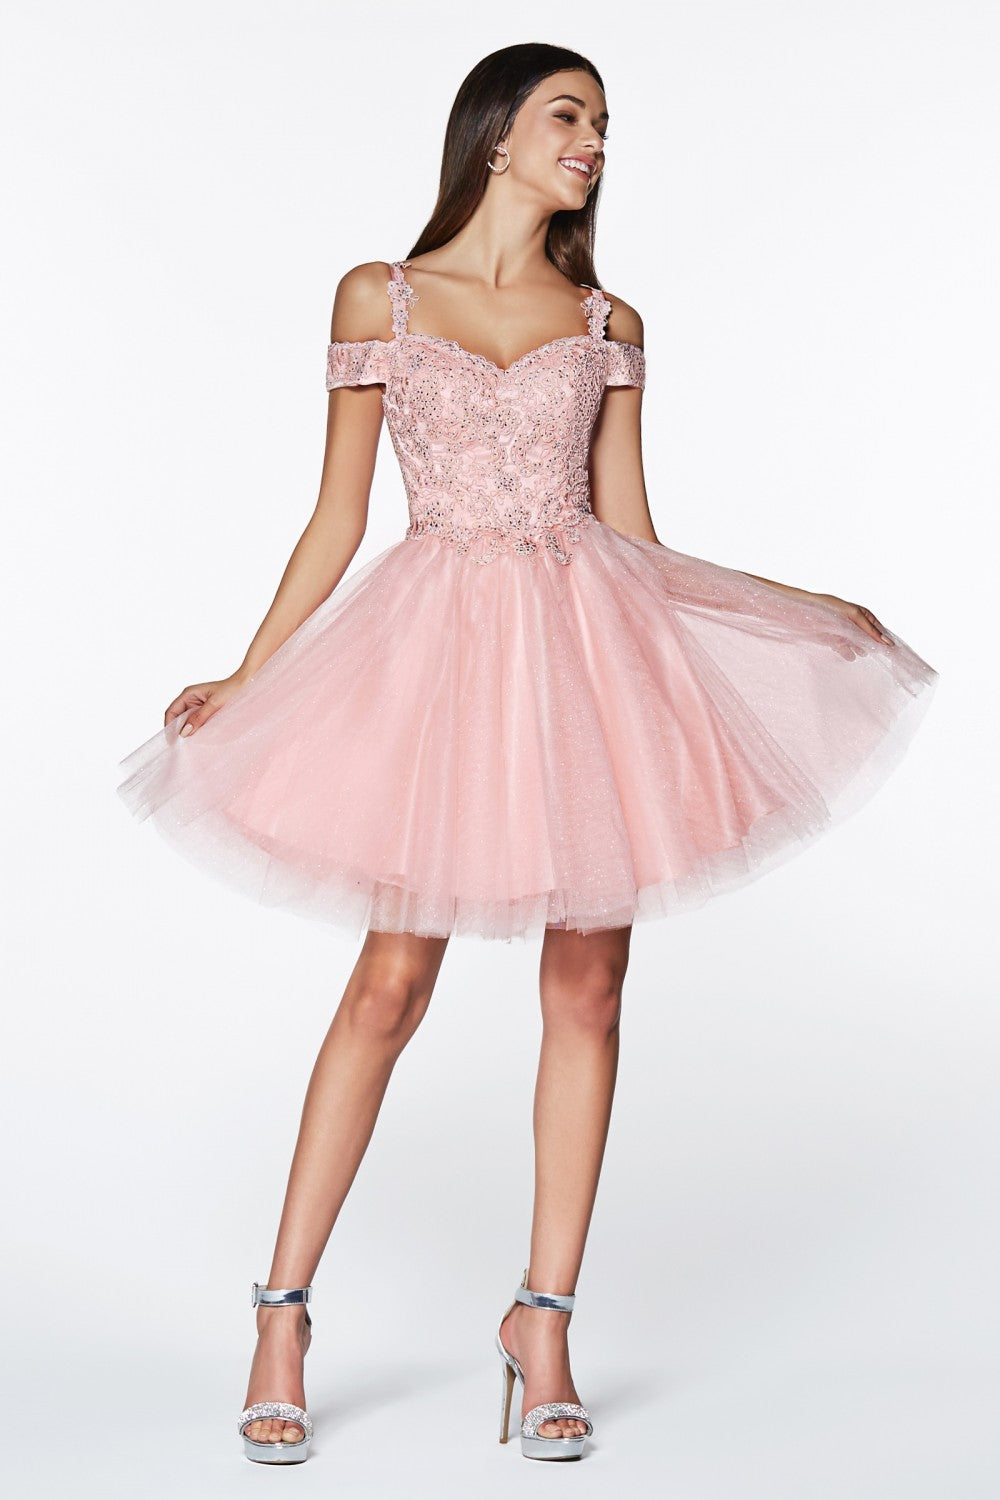 Cinderella Divine Chart I CD CD0132 - Short Homecoming Dress with Off the Shoulder Lace Detail and Glitter Tulle Skirt - Diggz Prom